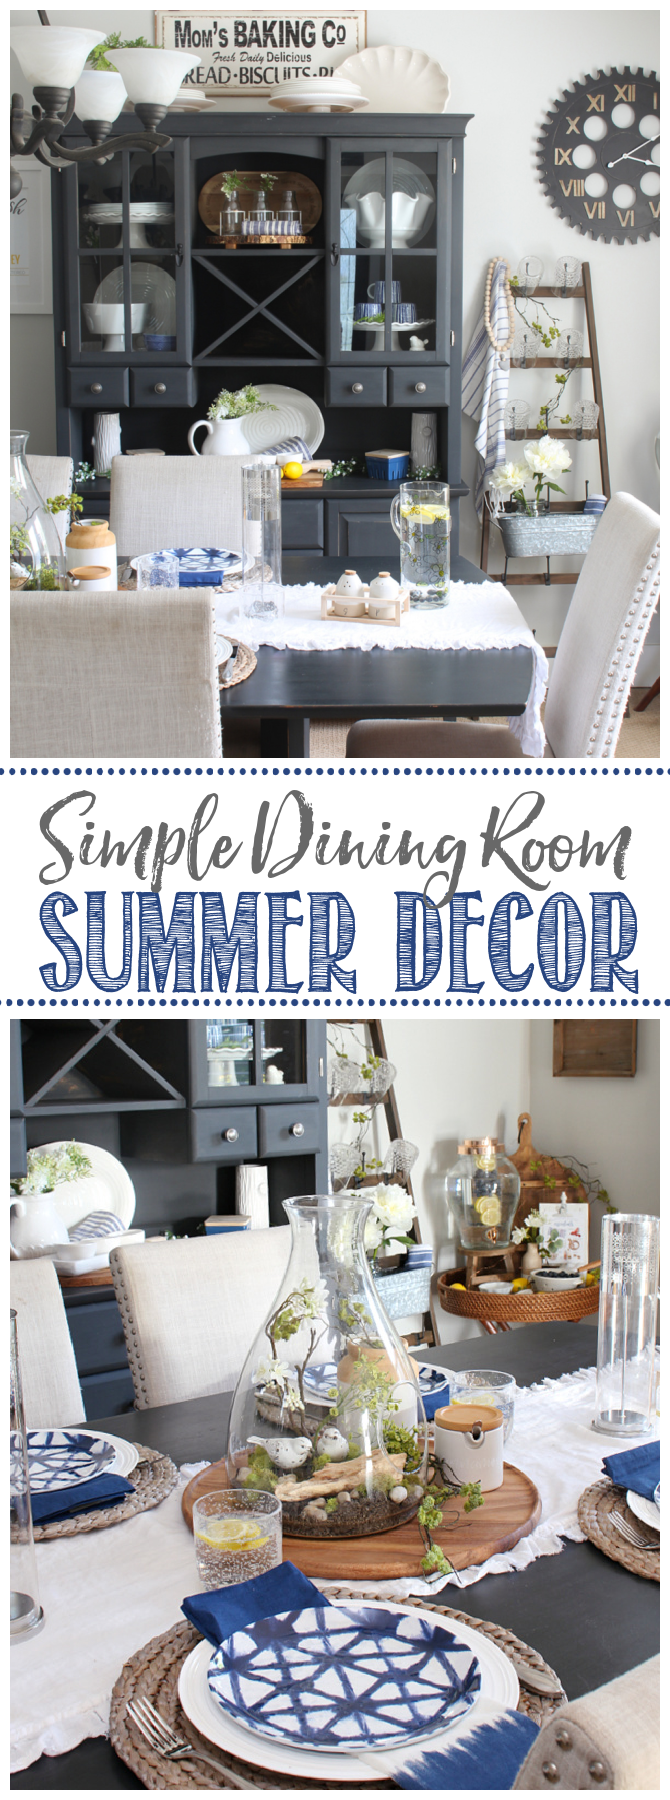 Farmhouse style dining room decorated with blues and greens for summer.